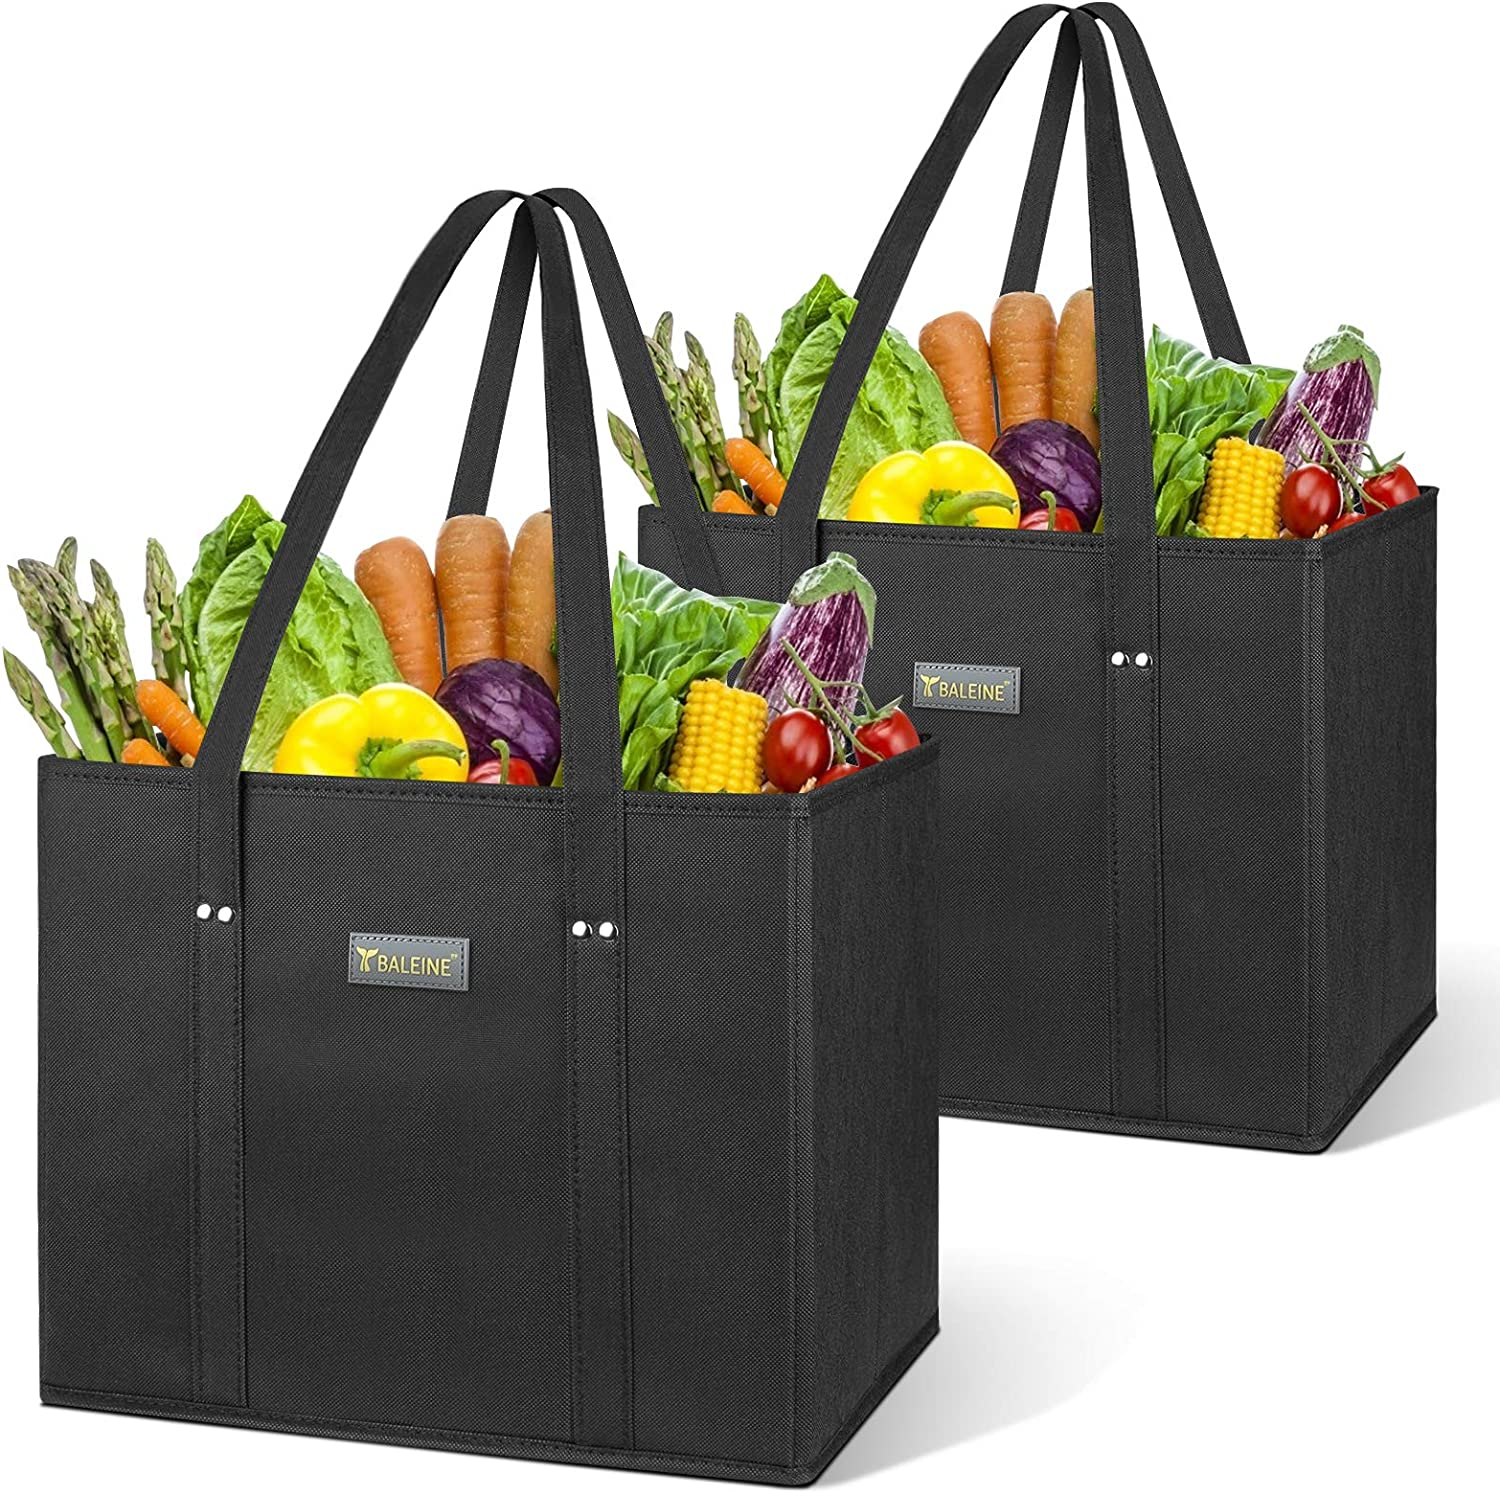 BALEINE 2 Pack Reusable Grocery Shopping Box Bag Set with Reinforced Bottom & Handles, Large Heavy Duty Eco Friendly Collapsible Foldable Bags in Bulk Fit in Shopping Cart (Black)